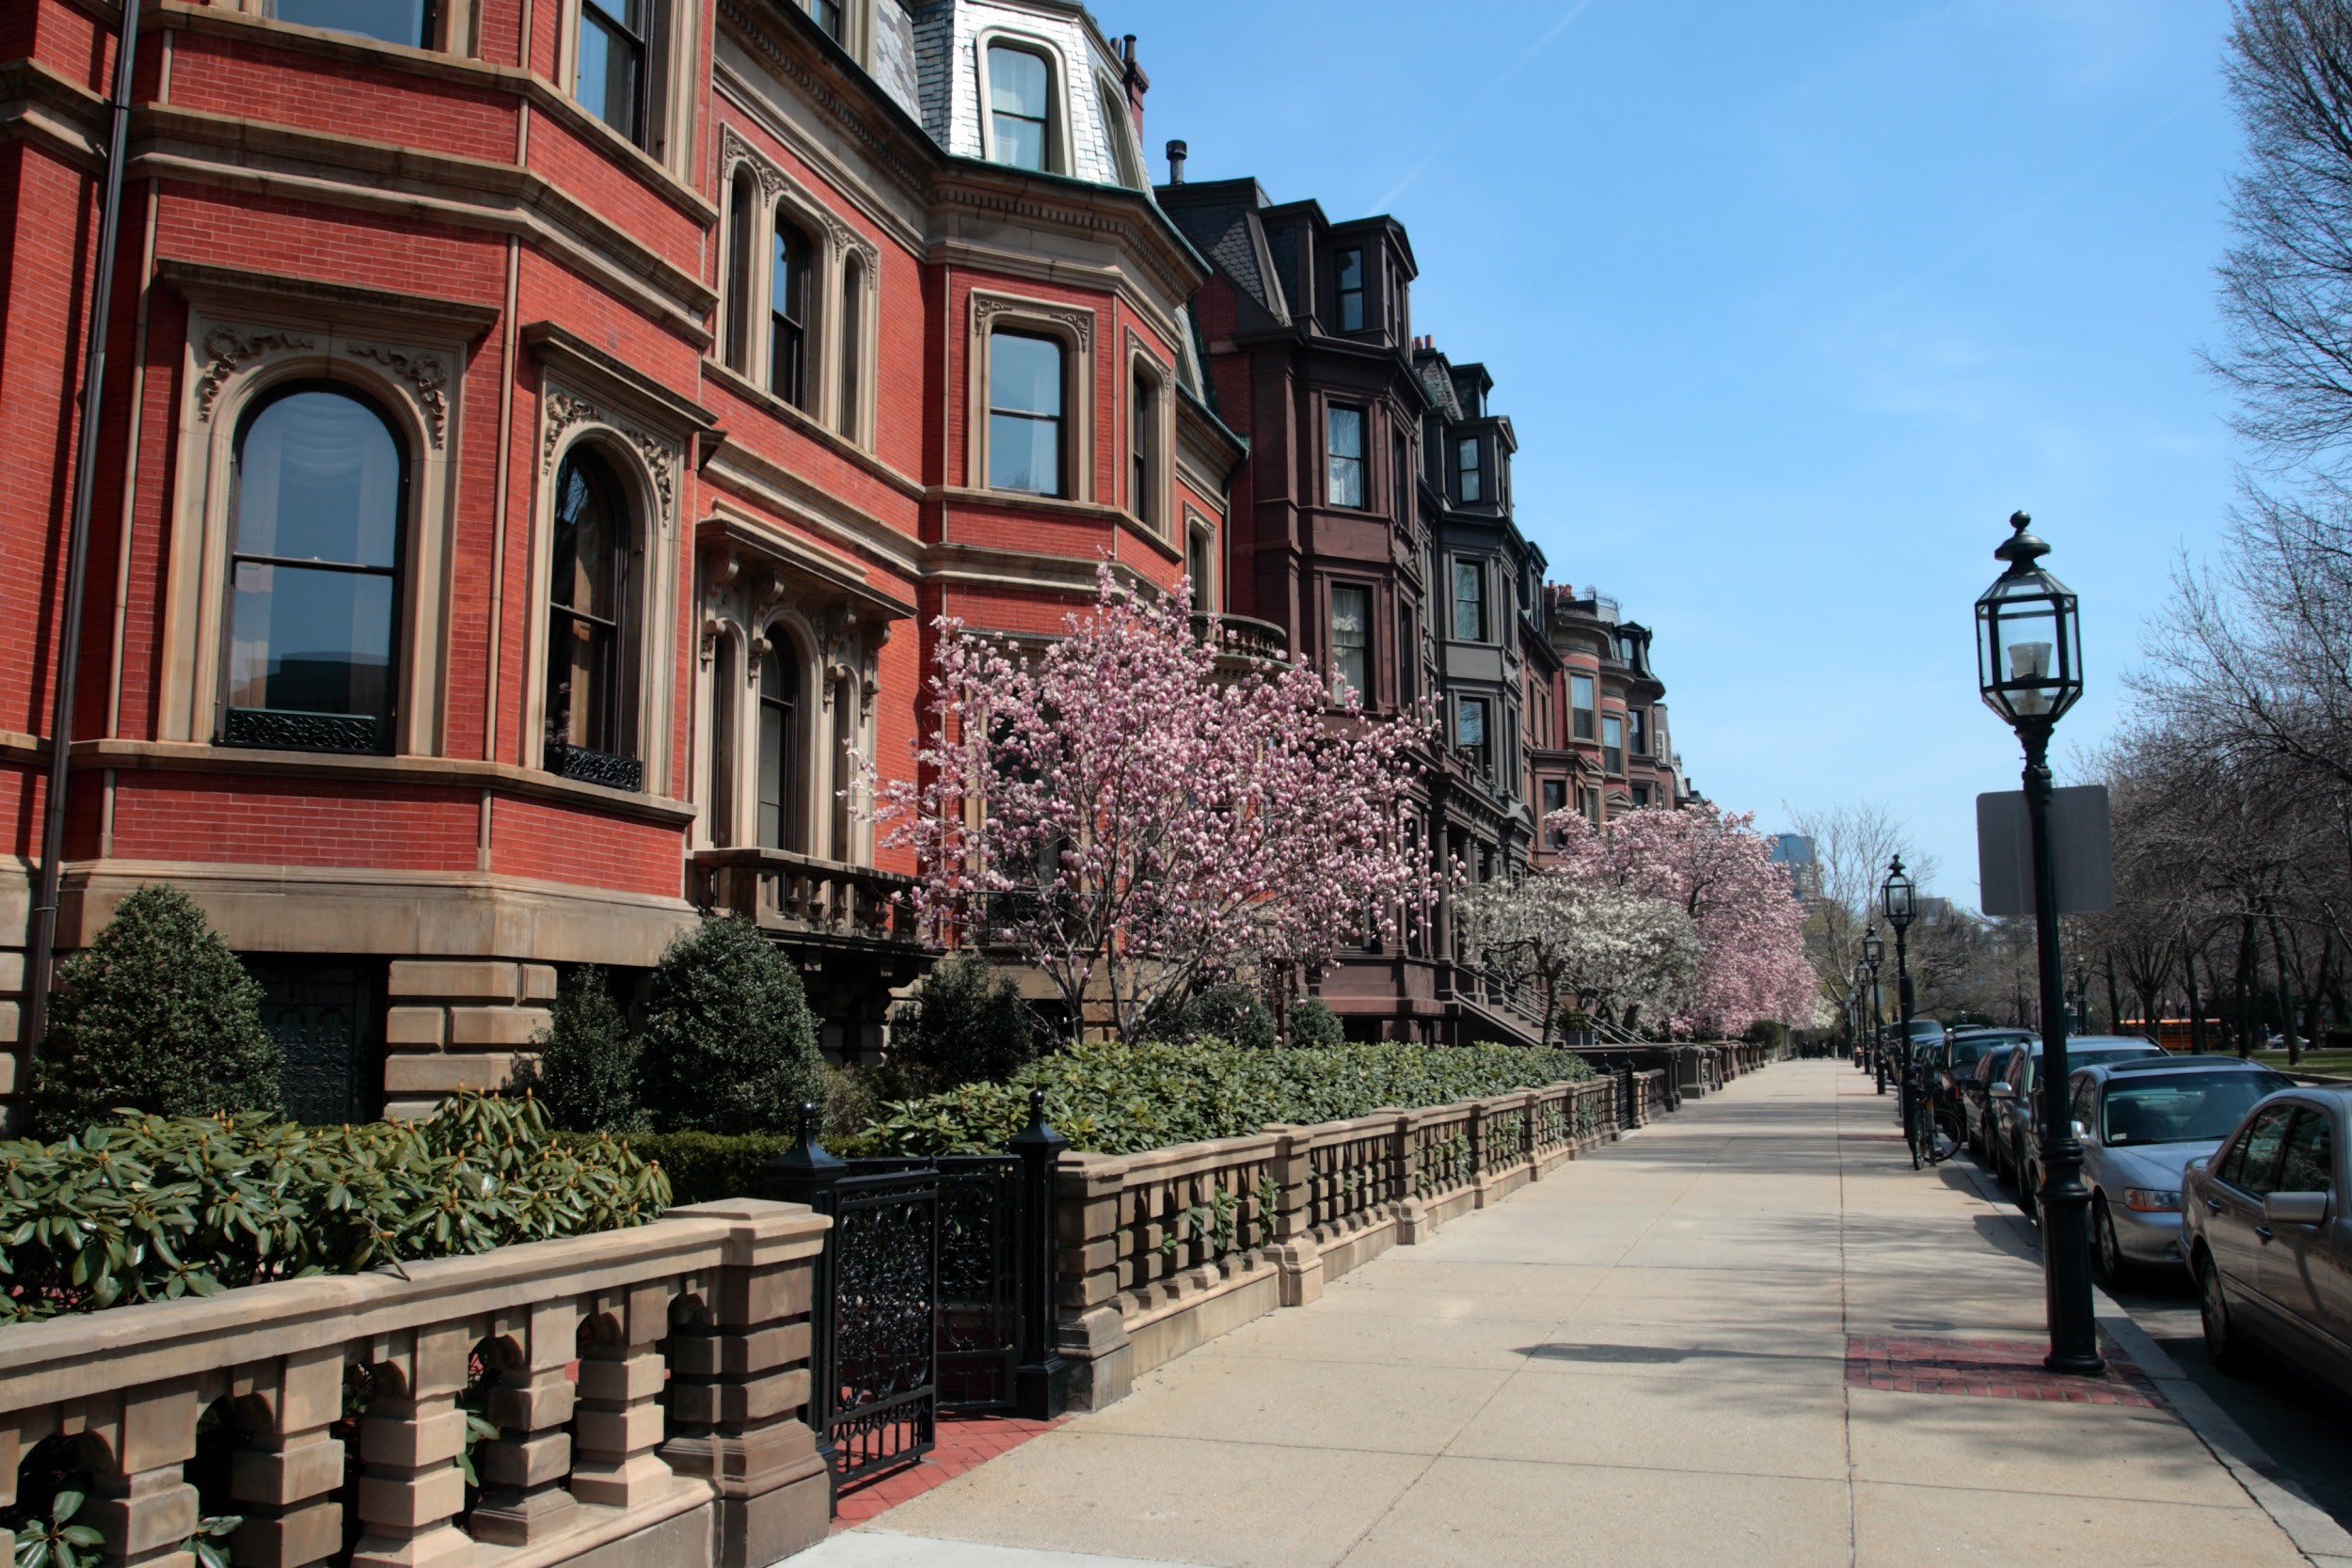 Sprawling row of traditional residential brownstones in Beacon Hill Boston, Massachusetts.